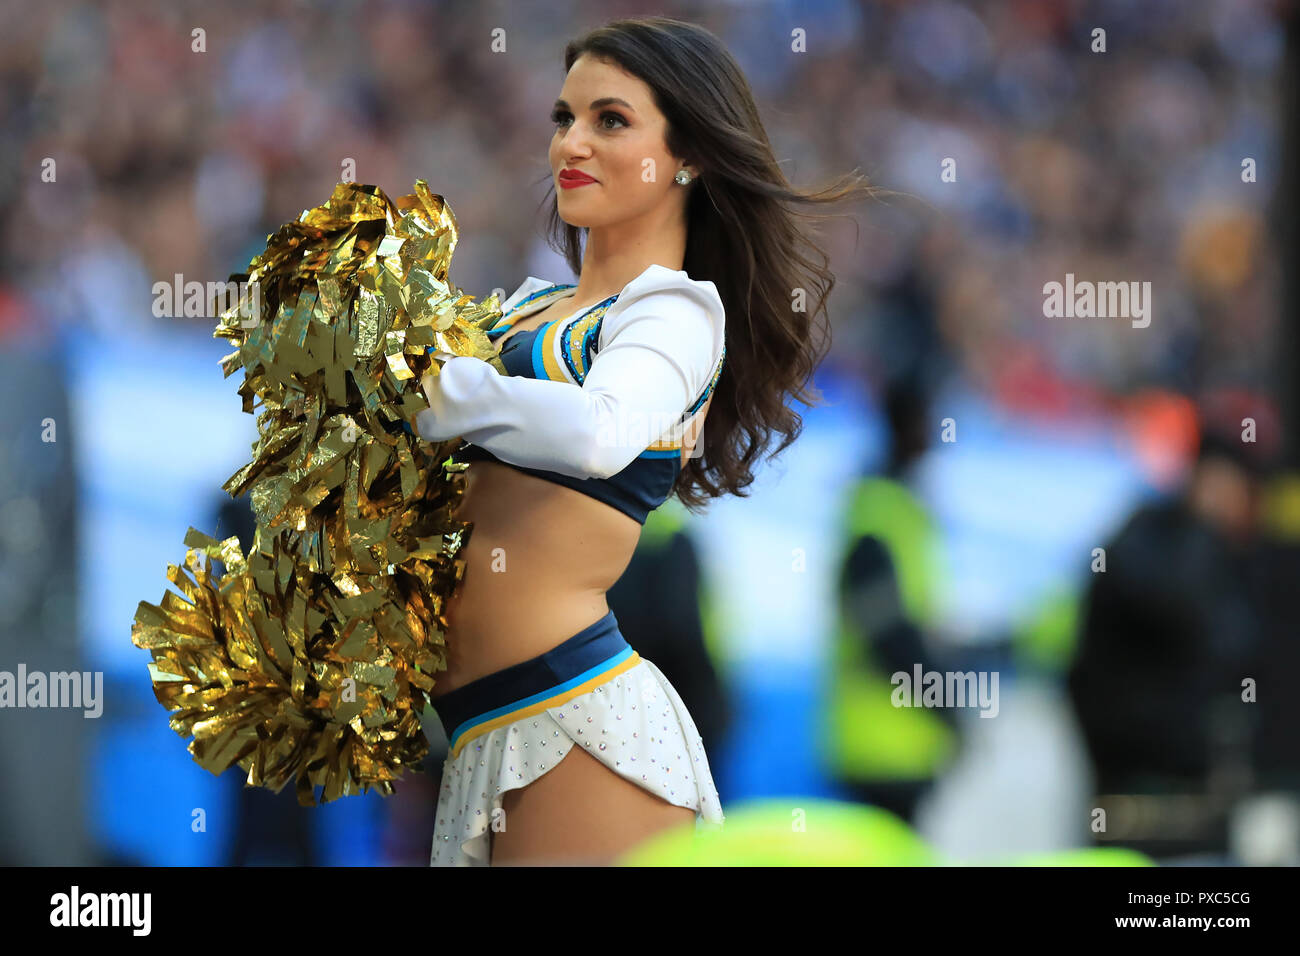 NFL Cheerleaders rencontres joueurs Zurich rencontres anglais